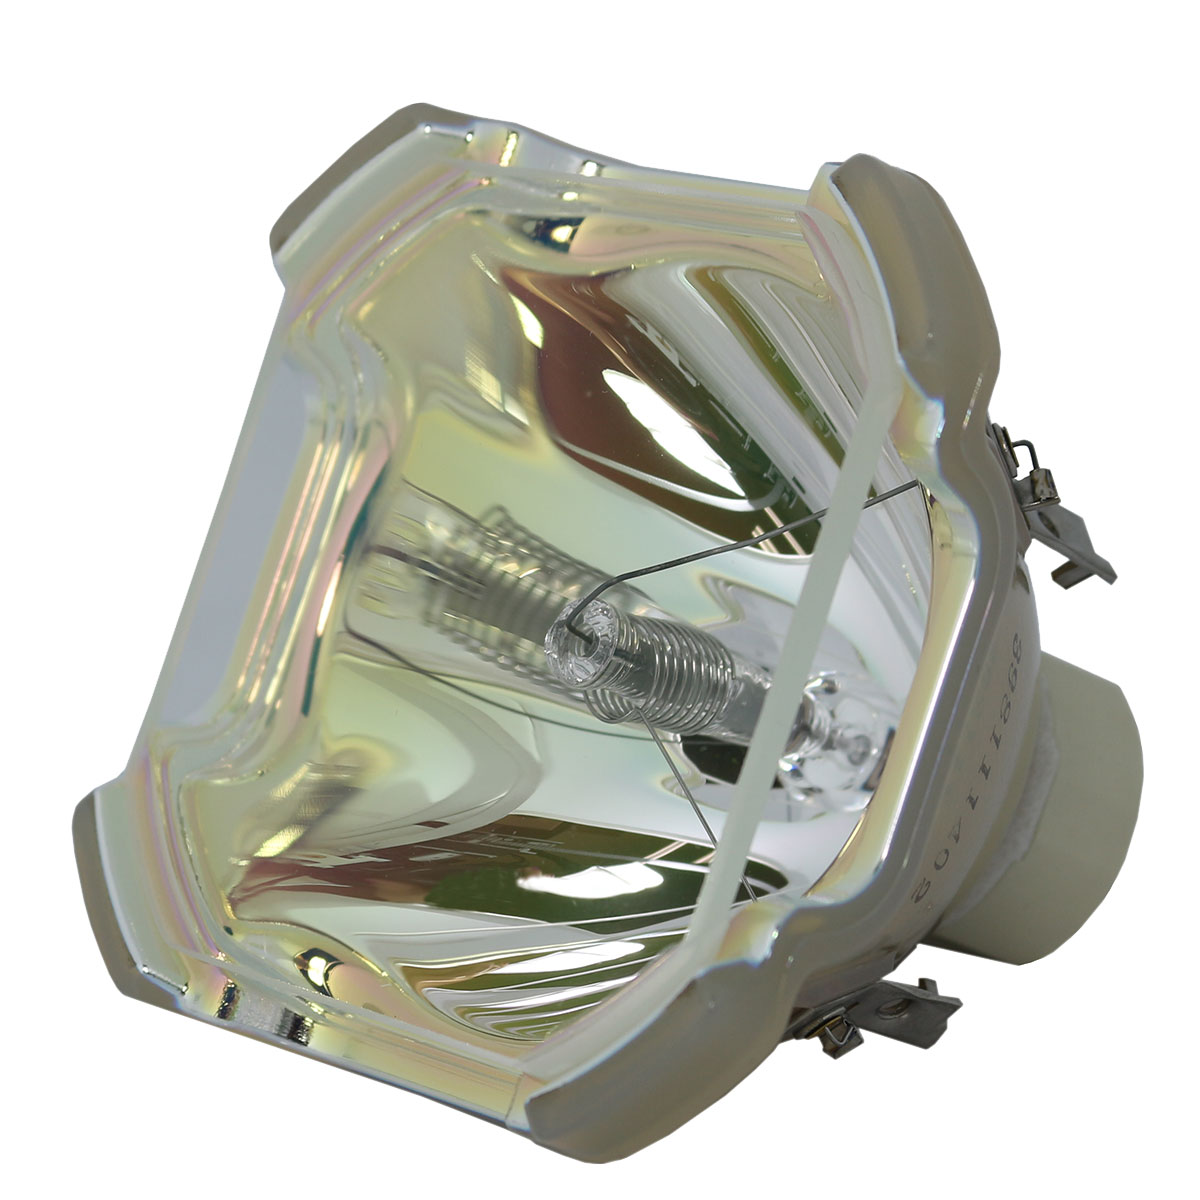 Original Osram Projector Lamp Replacement with Housing for Canon LV-7590 - image 5 de 5